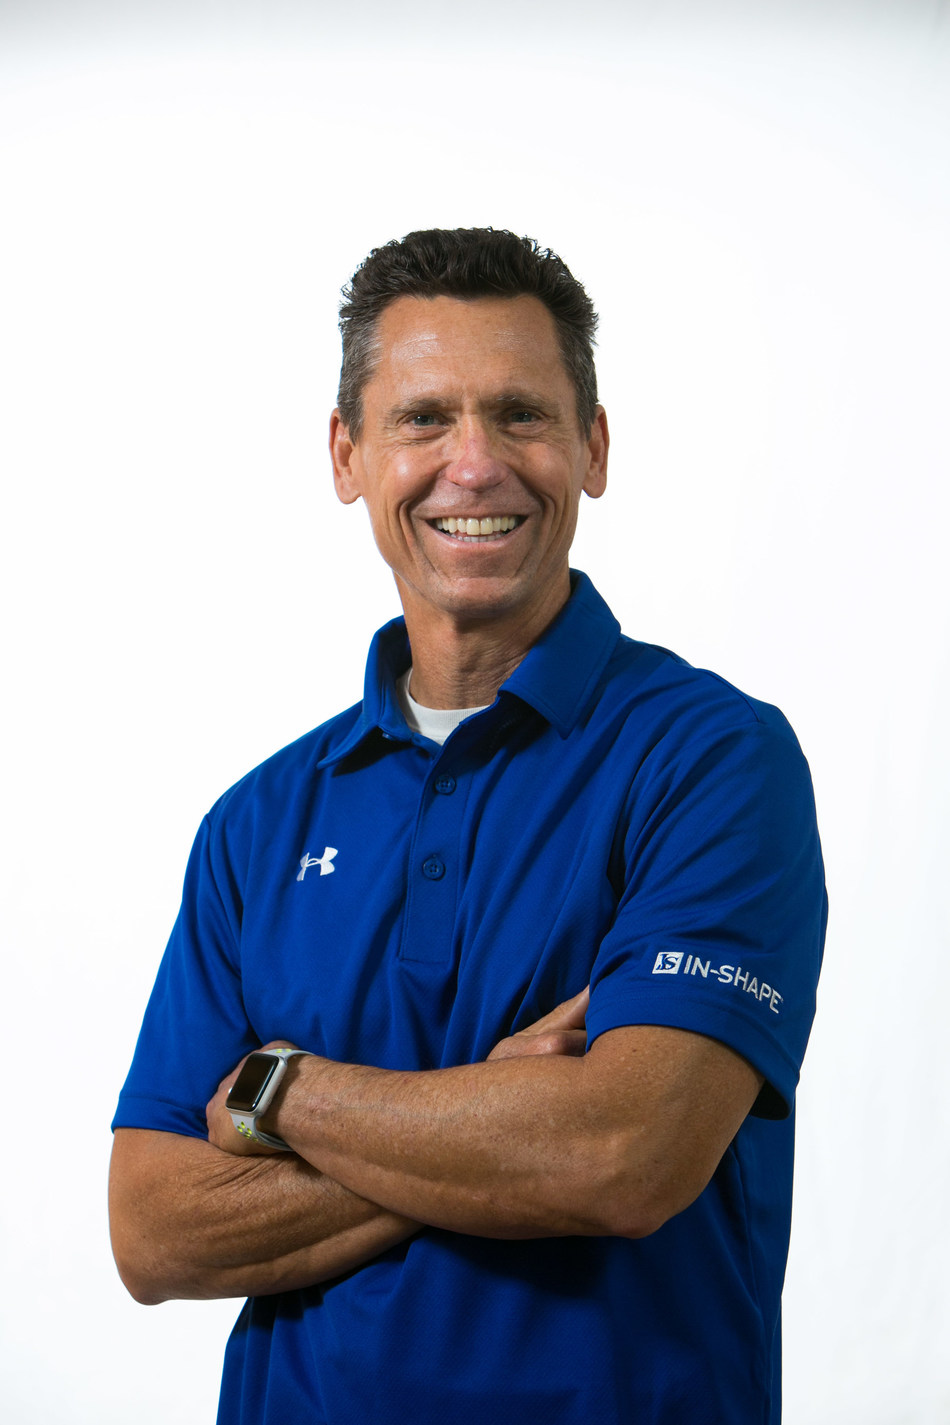 In-Shape Health Clubs hires Ralph Rajs as vice president of fitness innovation and programming.